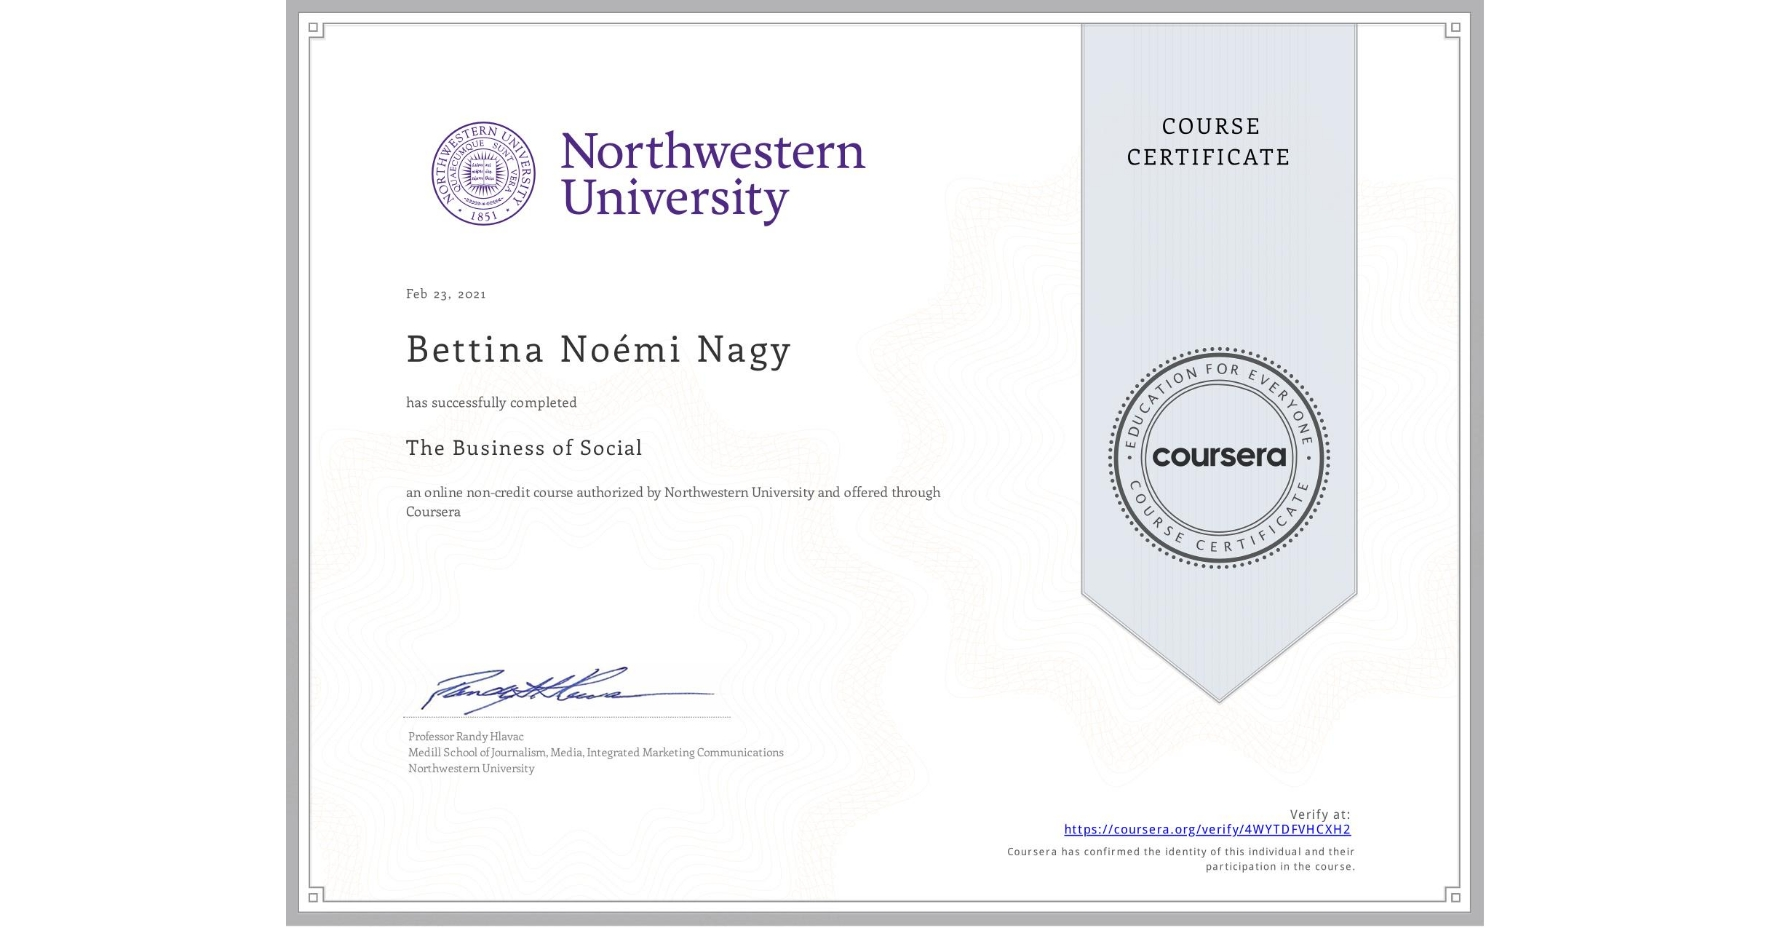 View certificate for Bettina Noémi Nagy, The Business of Social, an online non-credit course authorized by Northwestern University and offered through Coursera